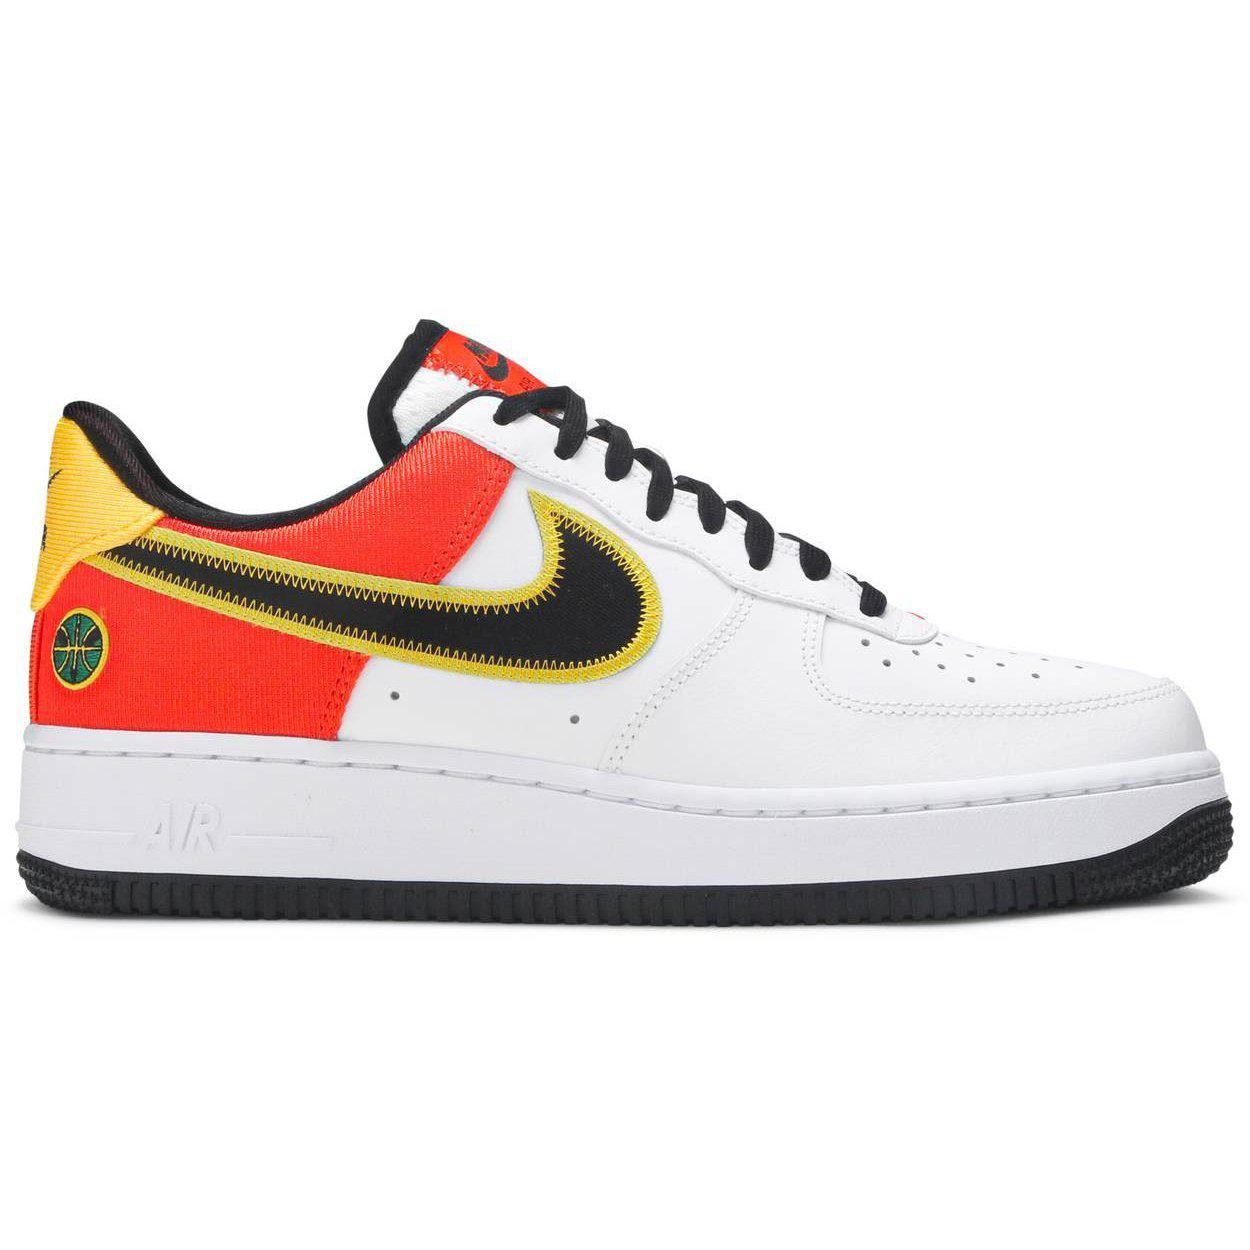 Nike Air Force 1 Low 'Roswell Raygun' | Waves Never Die | Nike | Sneakers